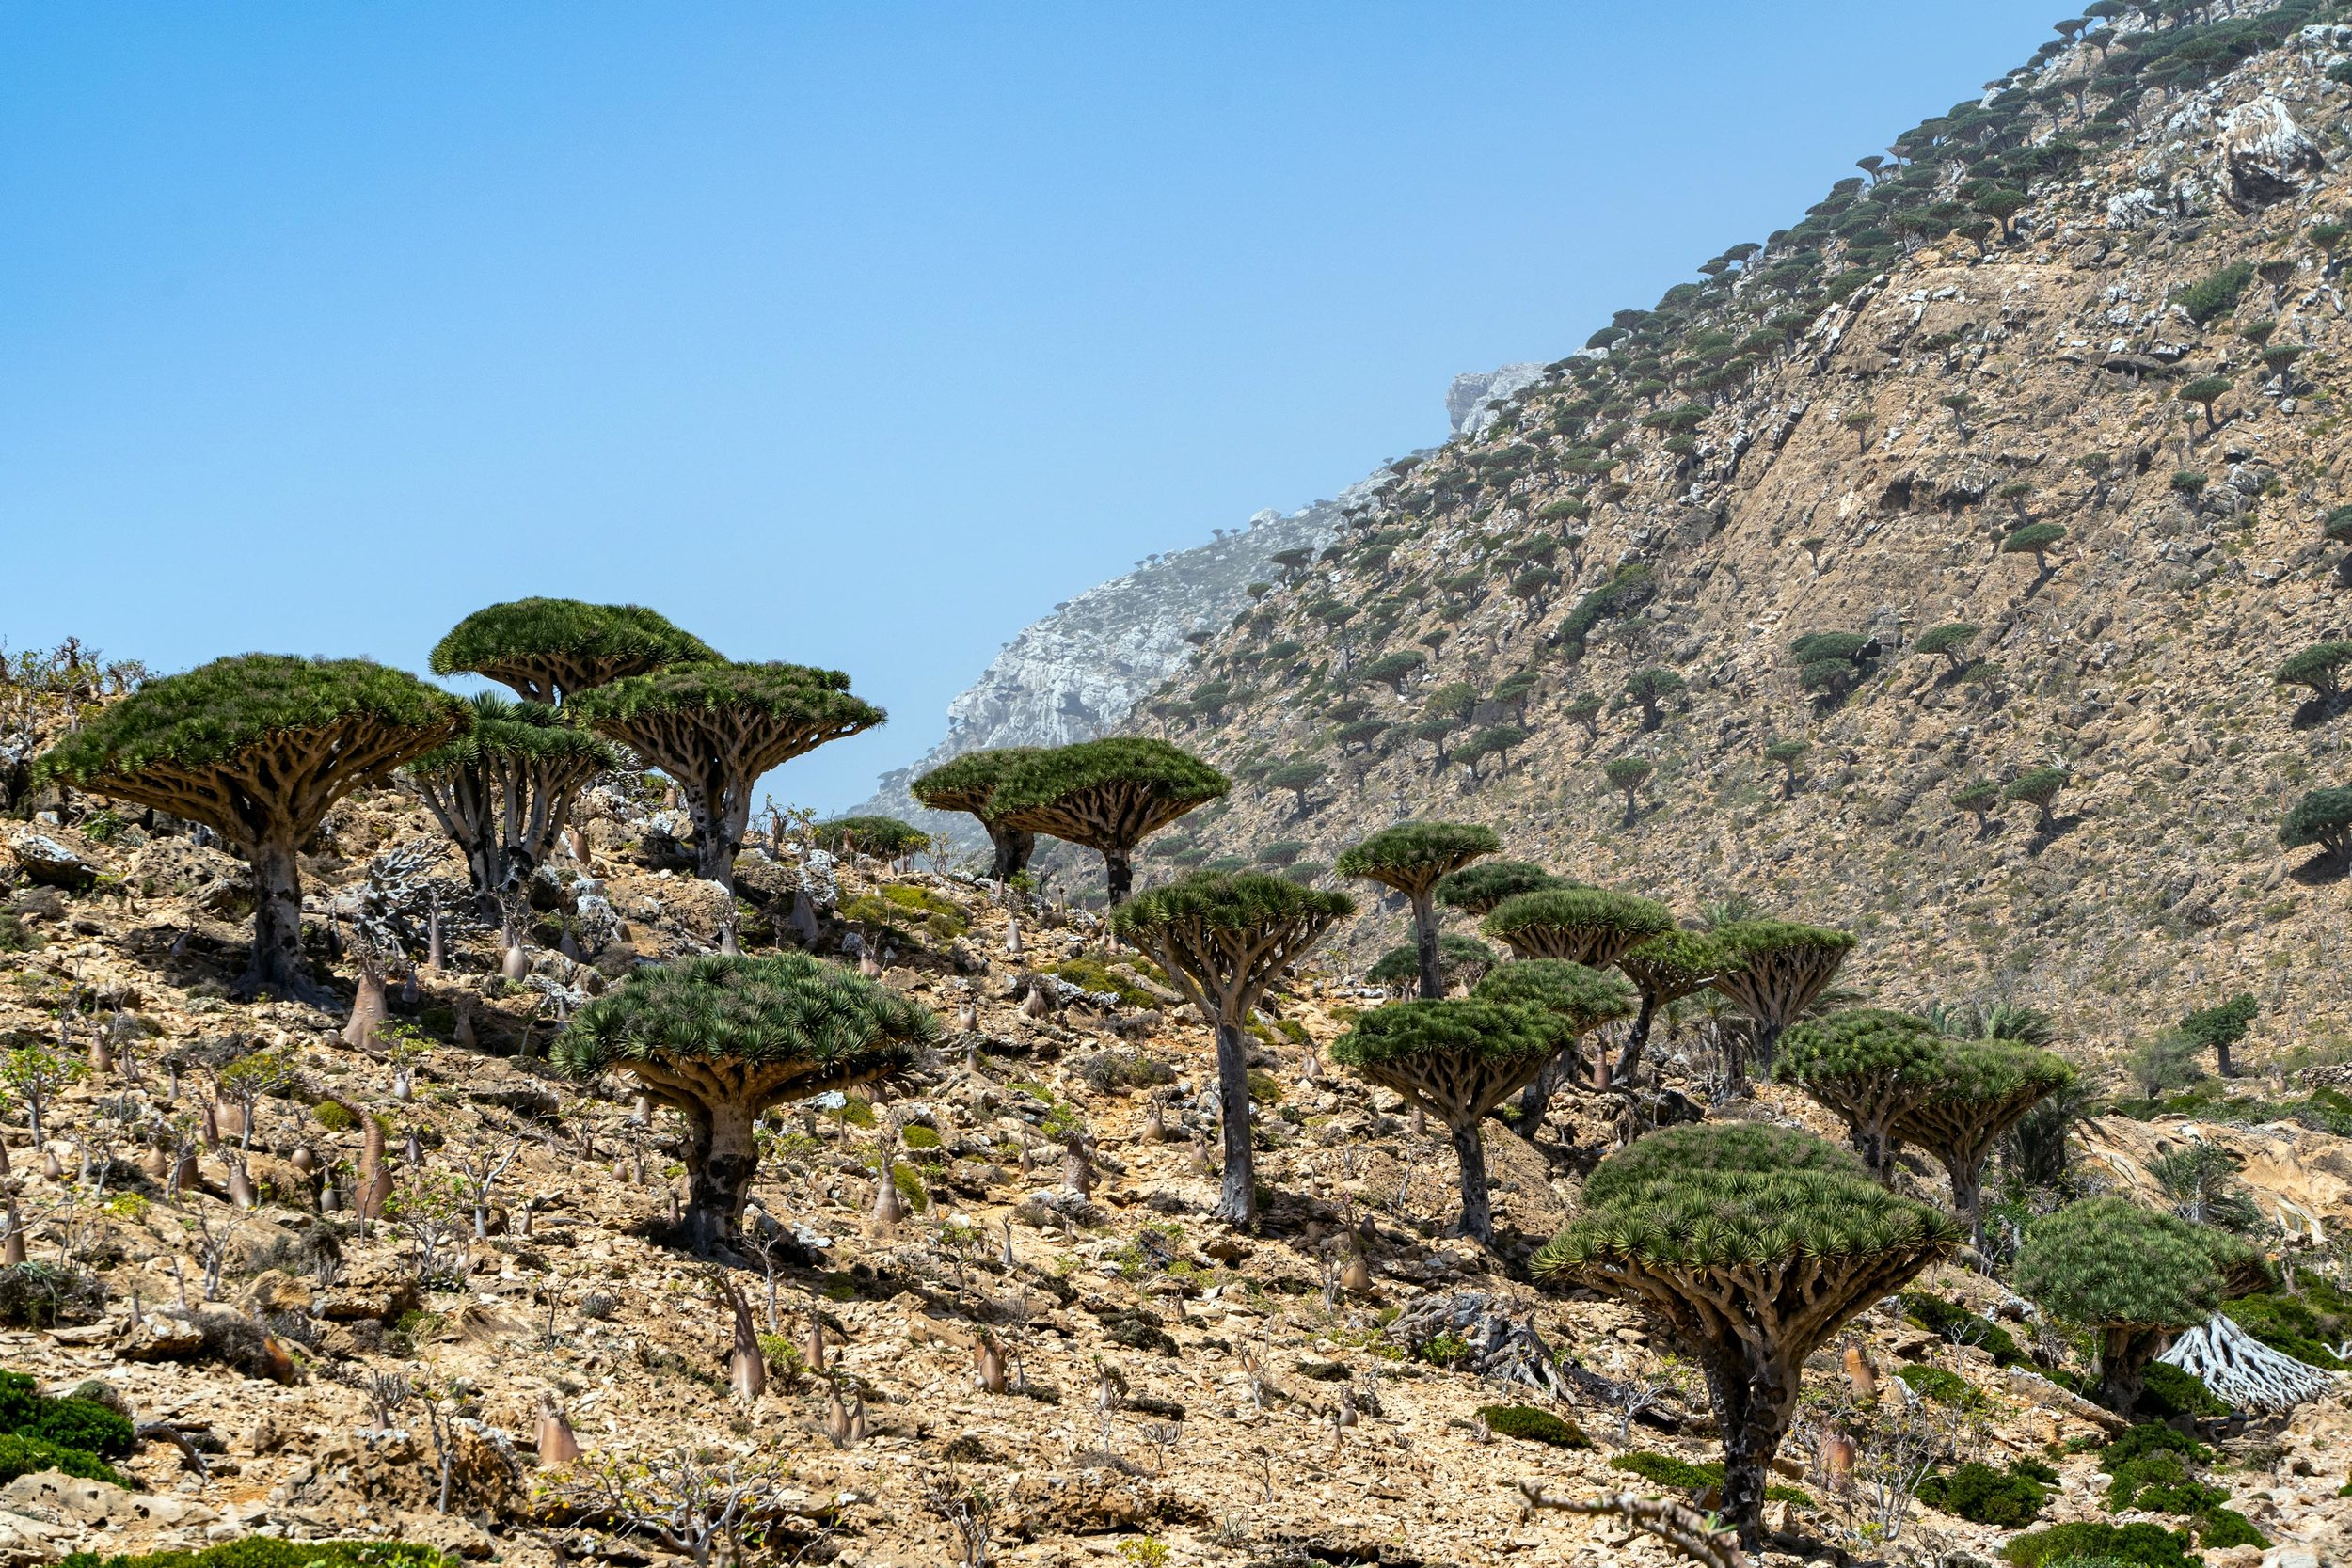 The Homhil Protected Area is one of only two areas on the island where the mysterious Dragon's Blood Trees exist. These trees are endemic to Socotra and only exist on the island. They take hundreds of years to grow and sprout branches, as they begin their life as a small bush. This remarkable high altitude valley in the east of the island is home to not just the Dragon's Blood Trees, but also numerous Bottle Trees, Desert Rose trees and Frankincense Trees.